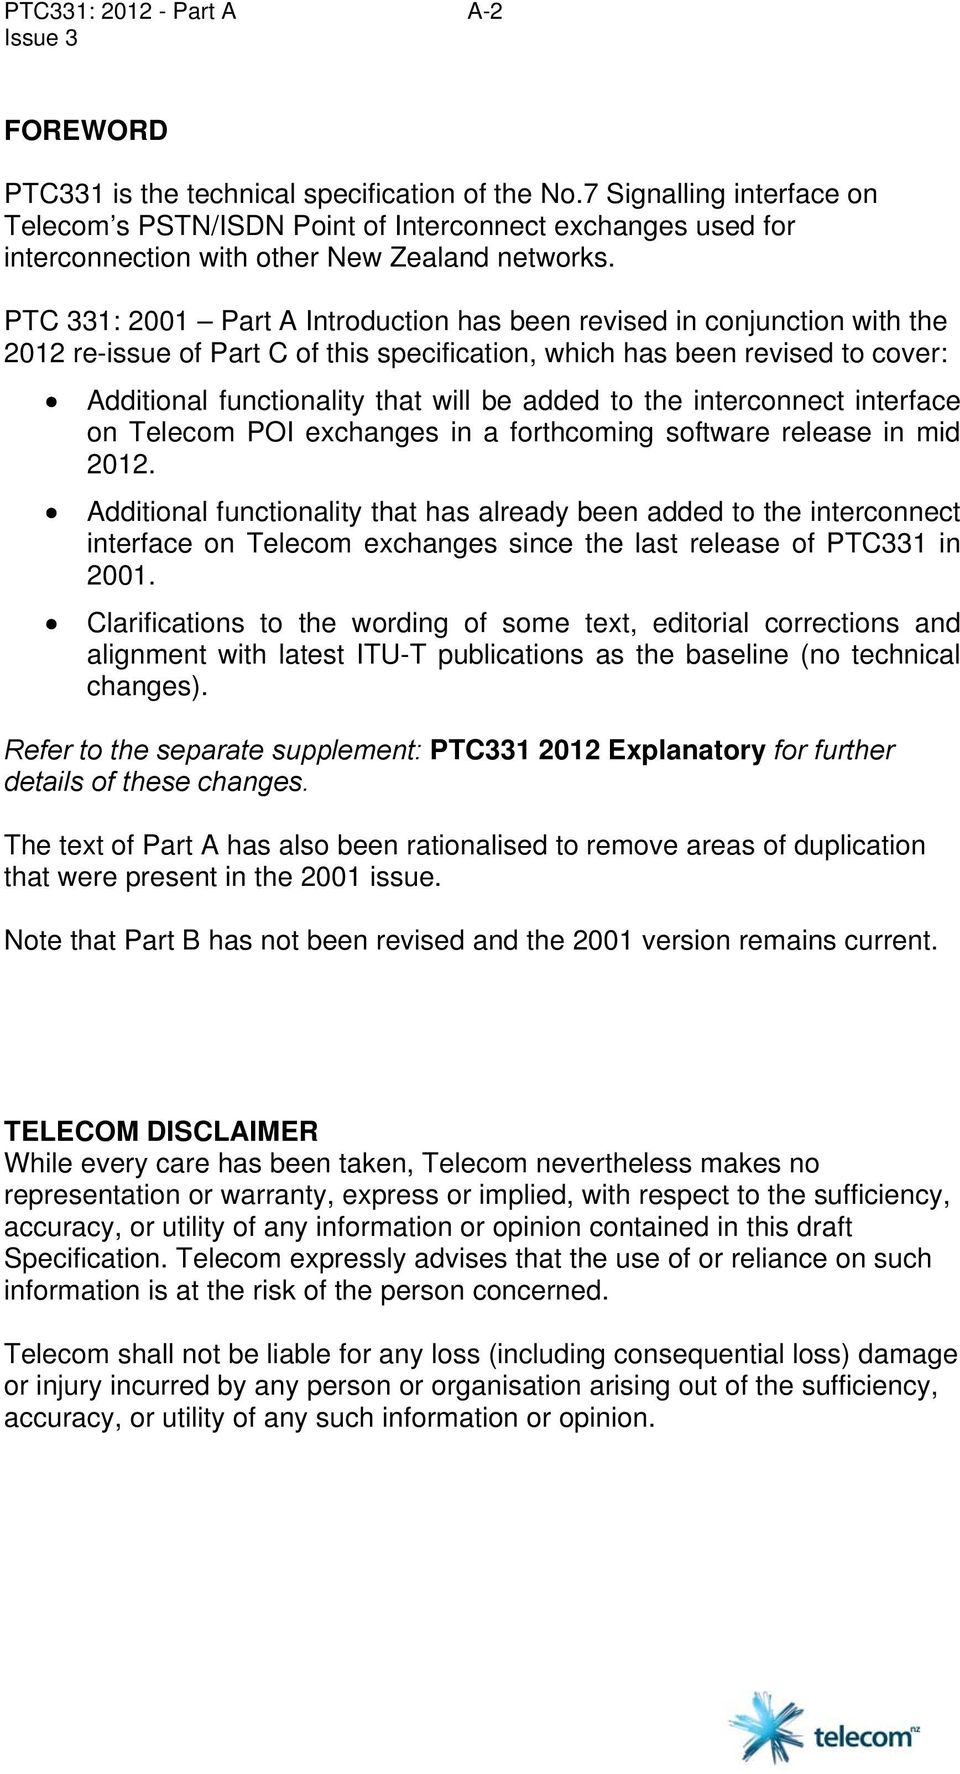 PTC 331: 2001 Part A Introduction has been revised in conjunction with the 2012 re-issue of Part C of this specification, which has been revised to cover: Additional functionality that will be added